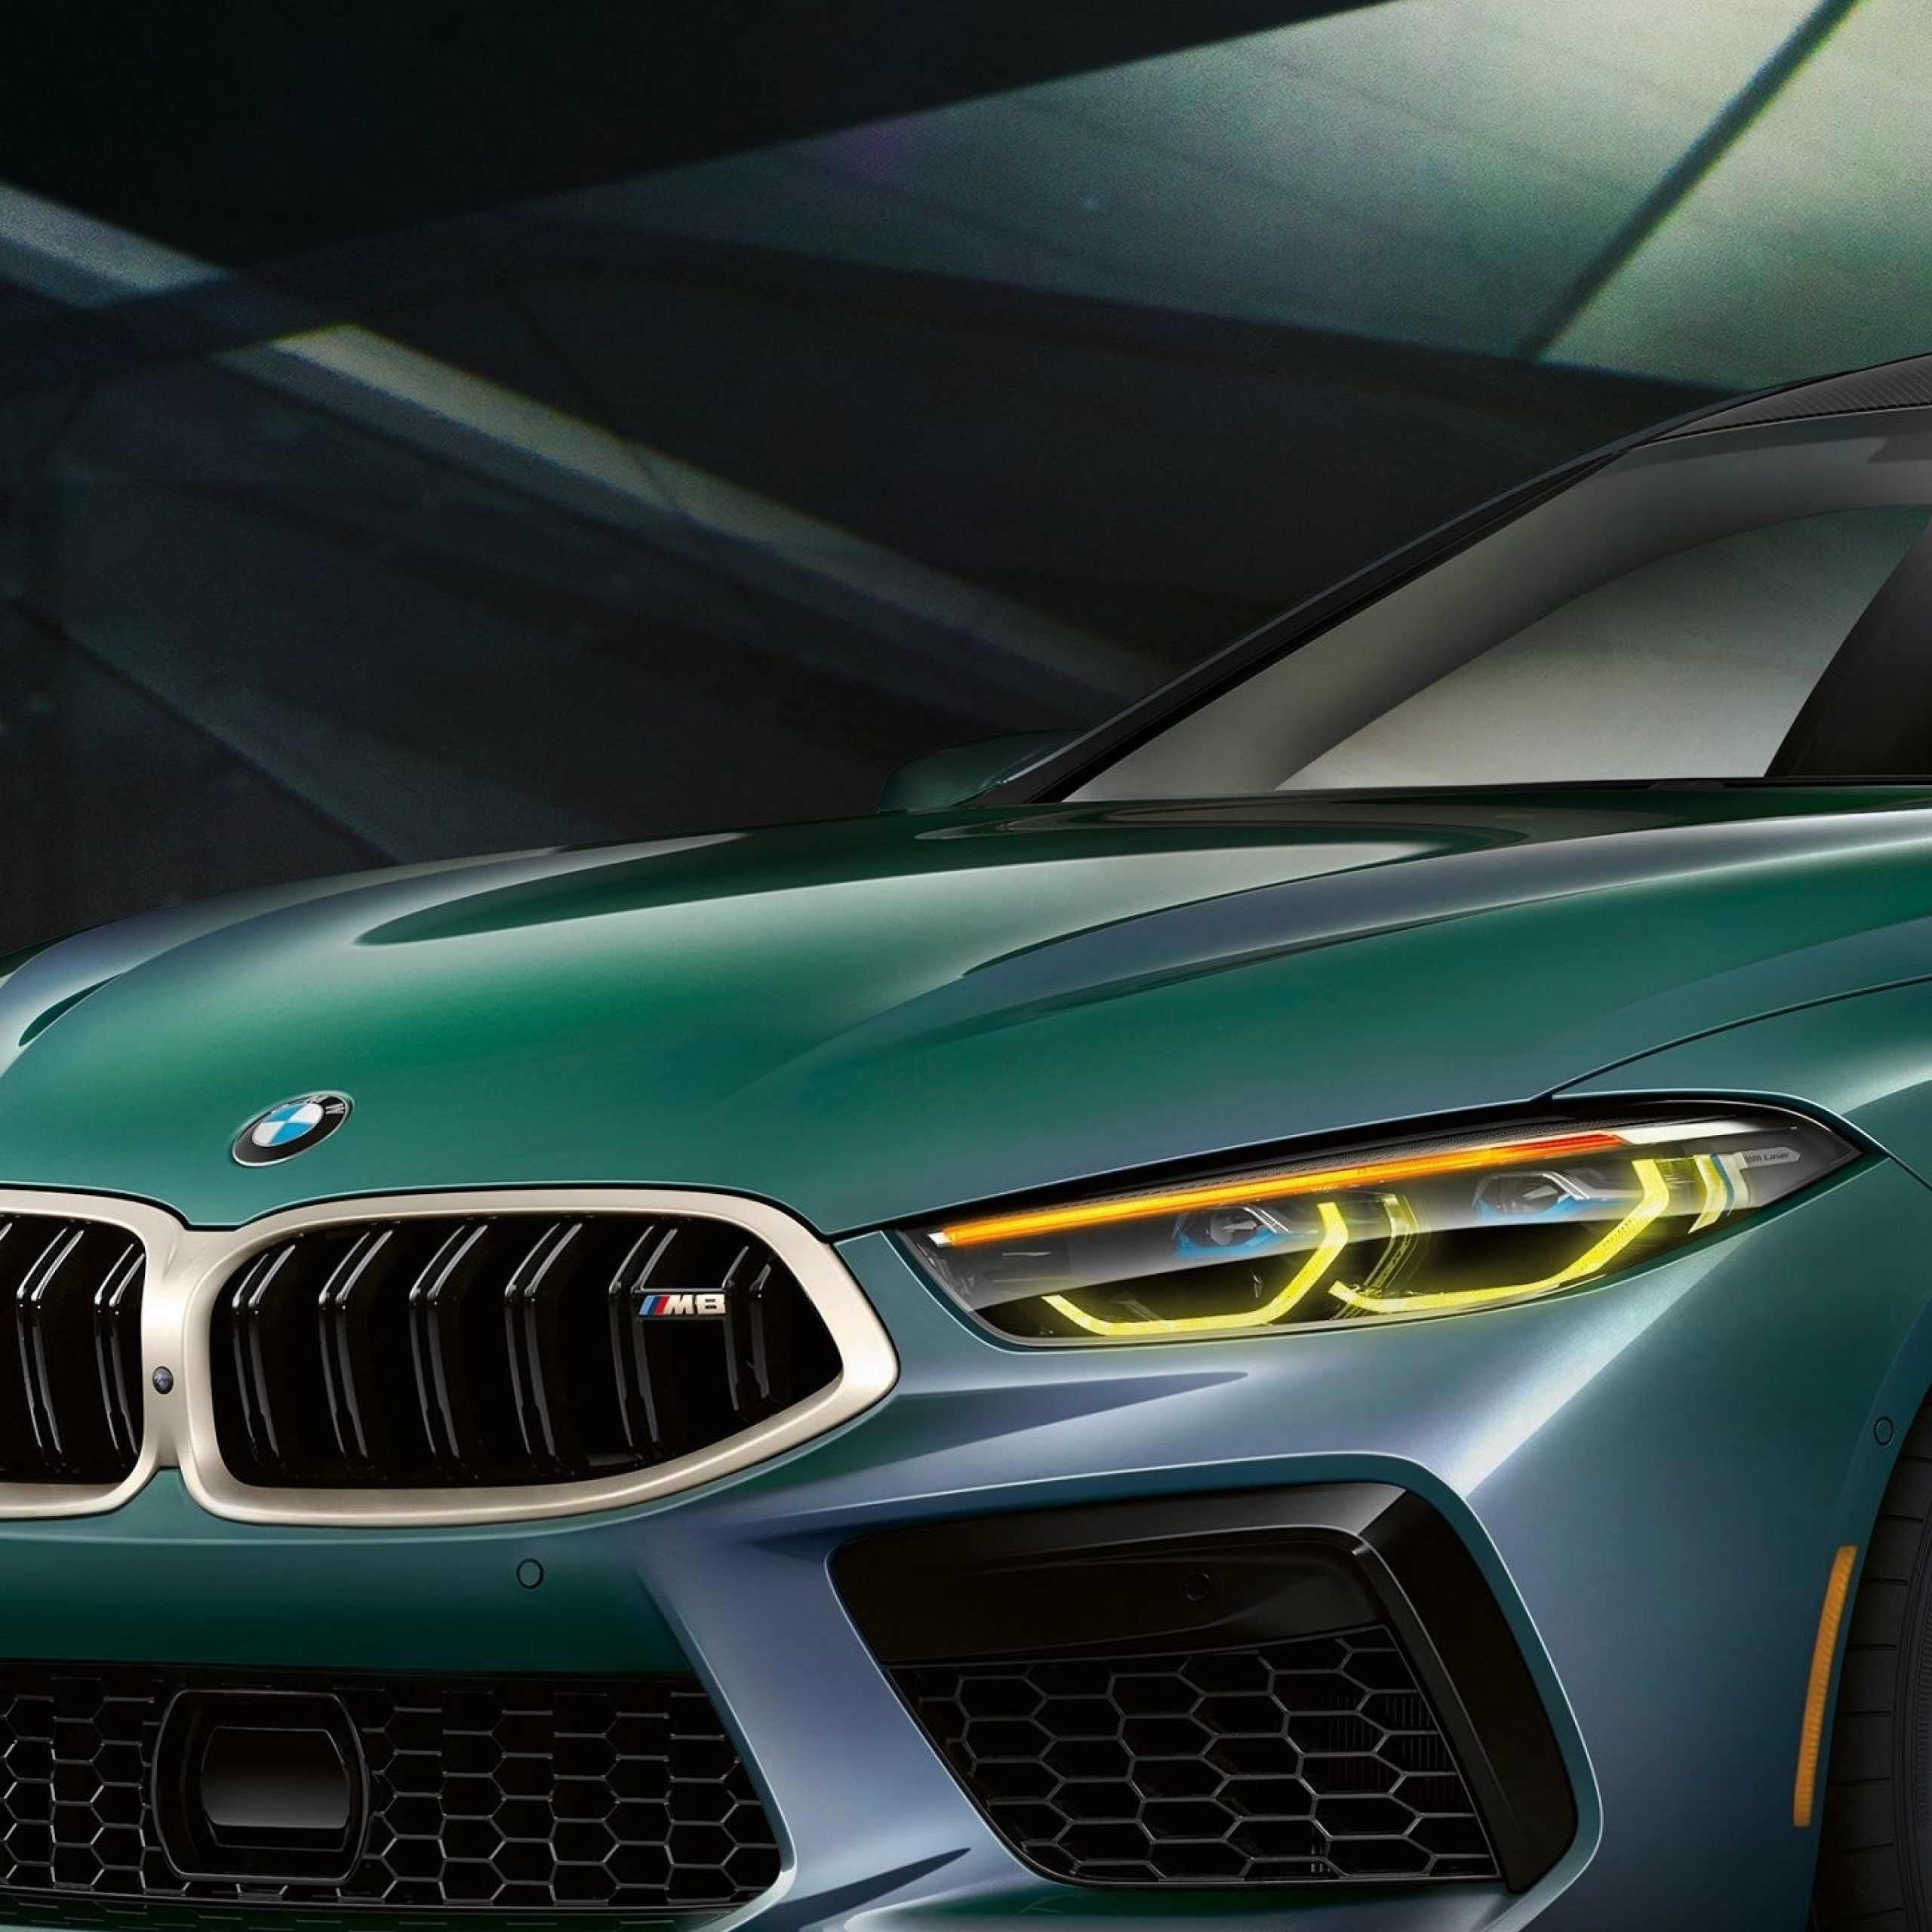 1440x2880 2020 car BMW M8 Gran Coupe First Edition green car 2560x2560